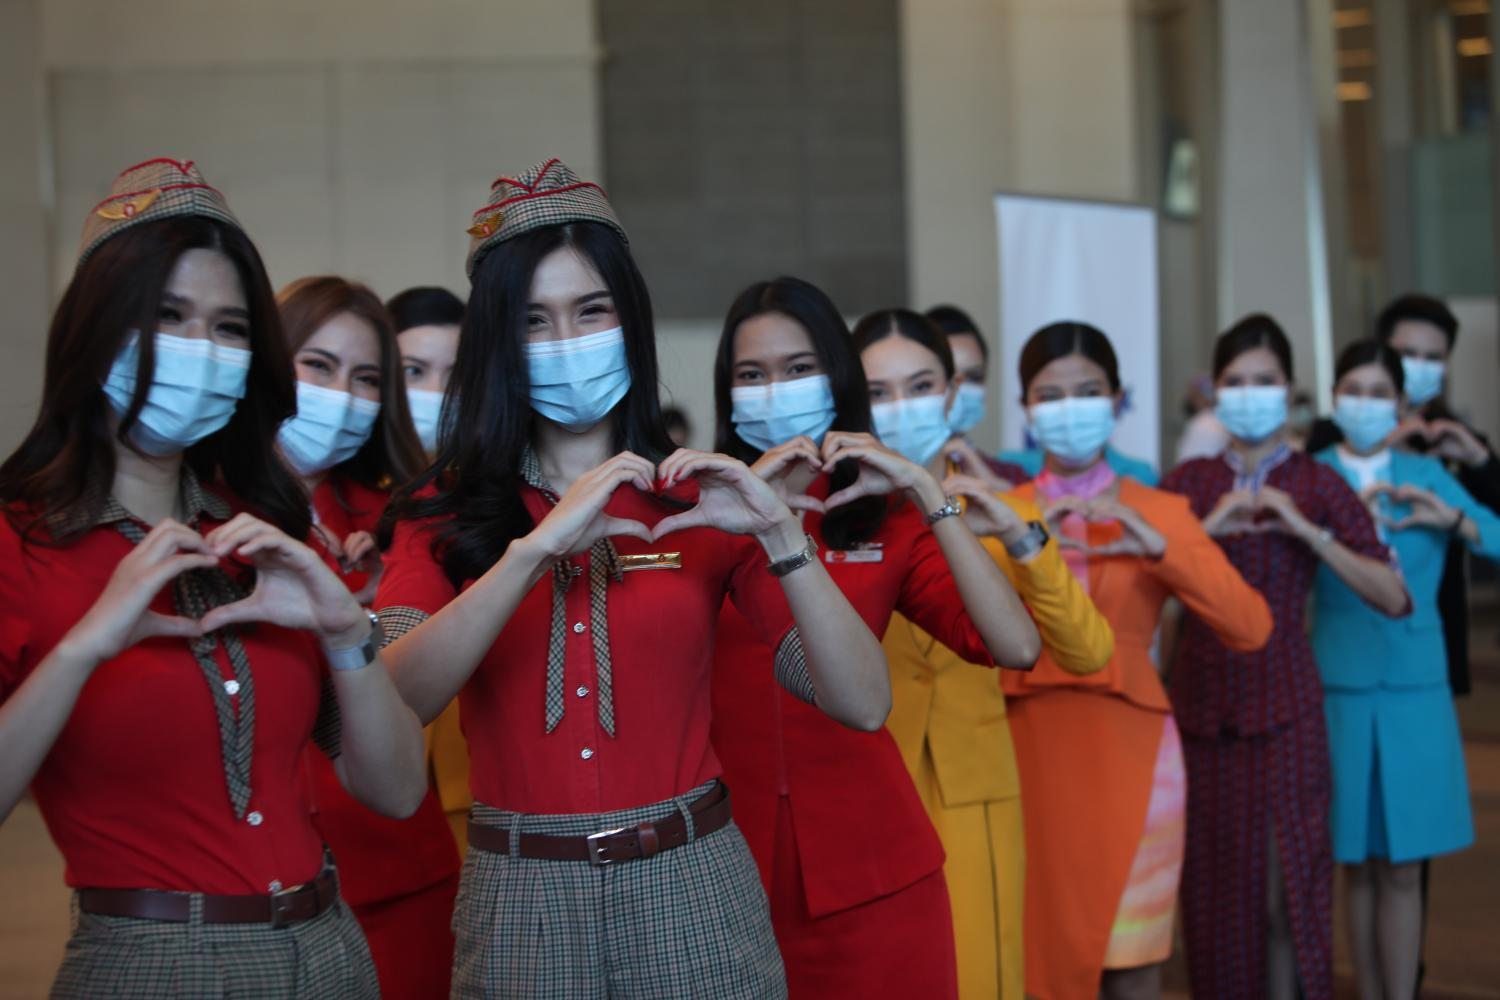 The Airlines Association of Thailand yesterday launched a vaccination programme for employees from seven airlines in Thailand. The five-day event is being held at the Paragon Hall of Siam Paragon department store.Apichart Jinakul